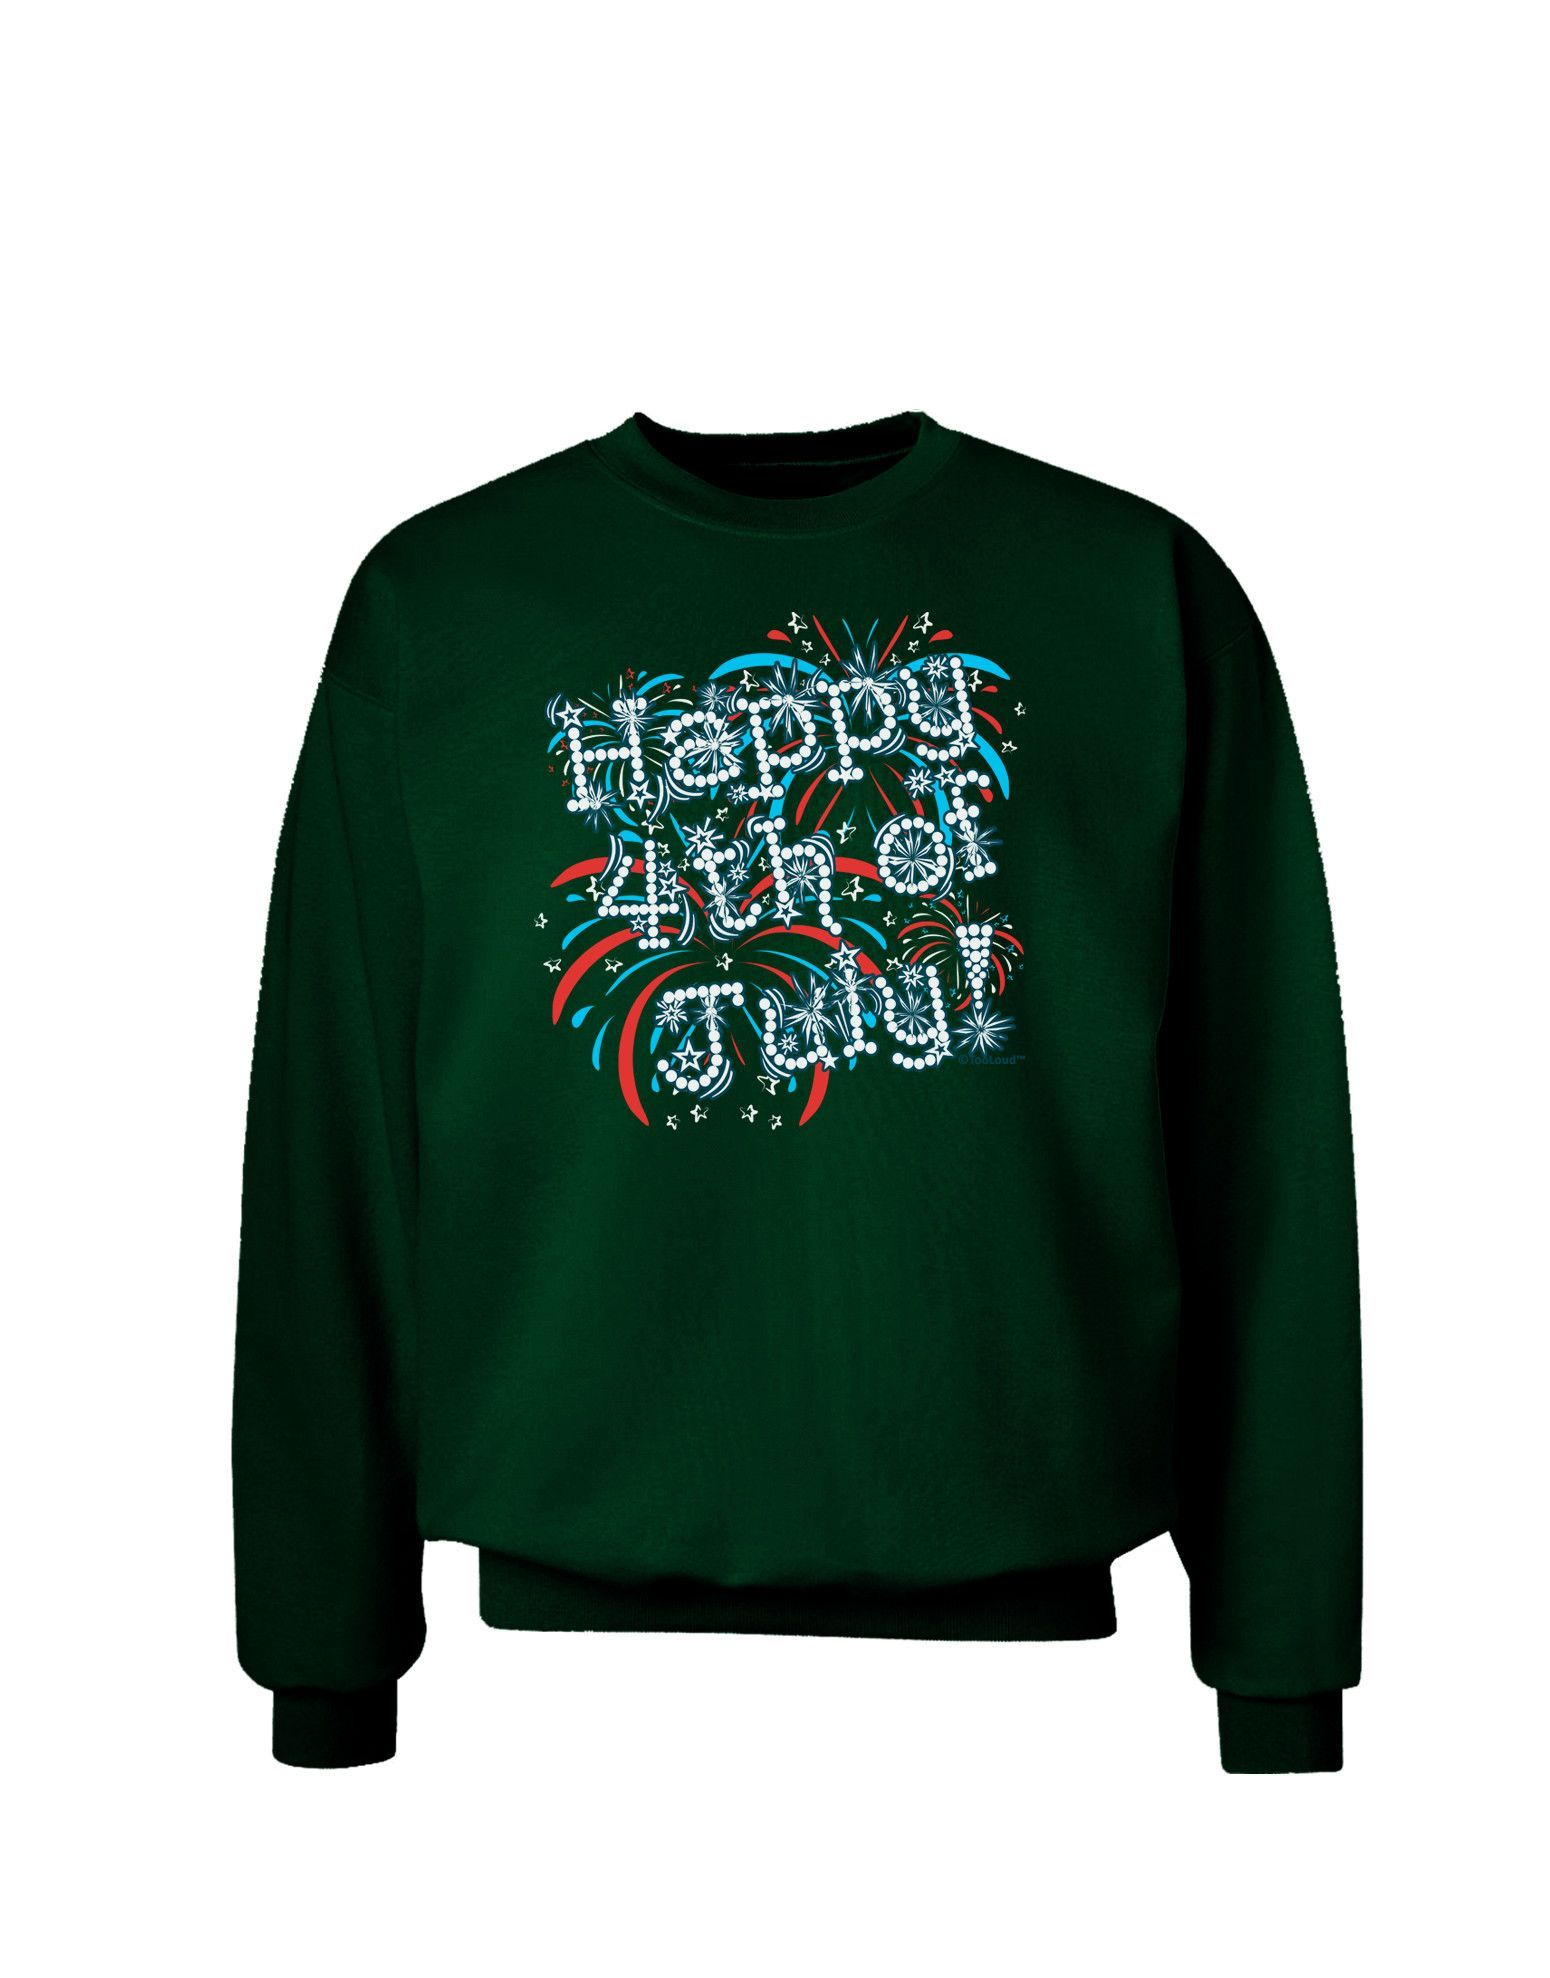 TooLoud Happy 4th of July - Fireworks Design Adult Dark Sweatshirt